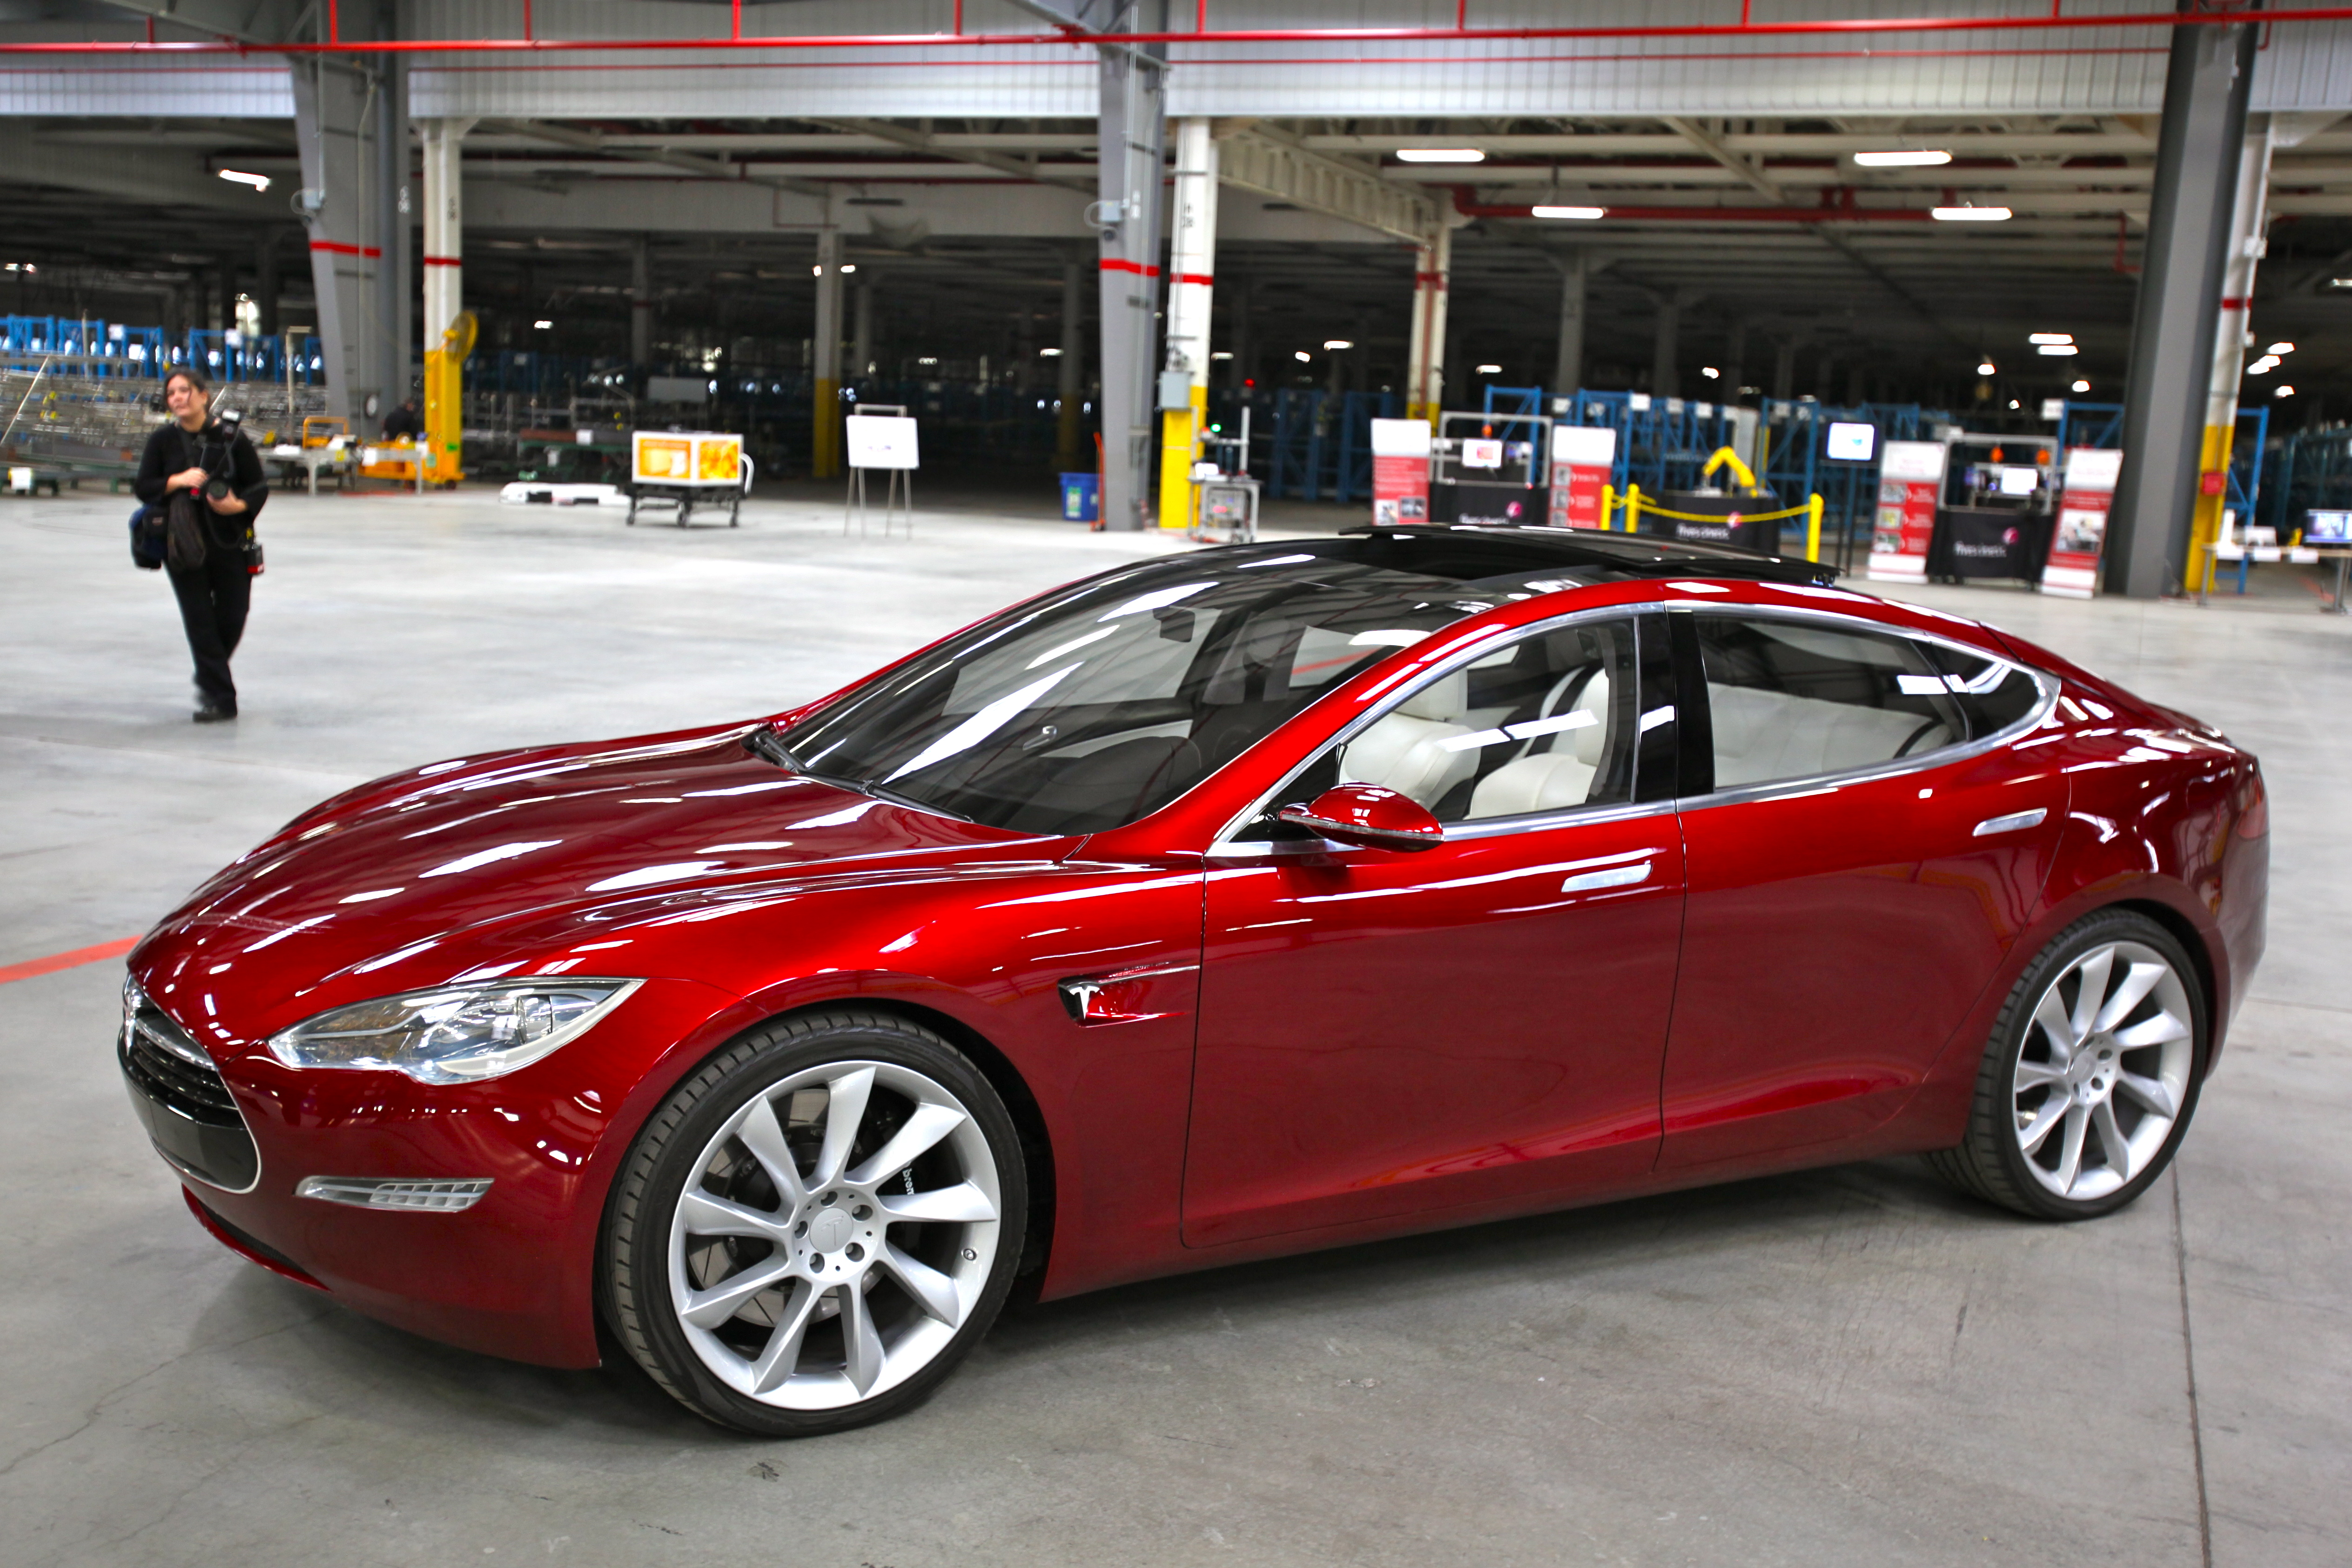 Start, Lock and Unlock Your Tesla Model S with a Smartphone